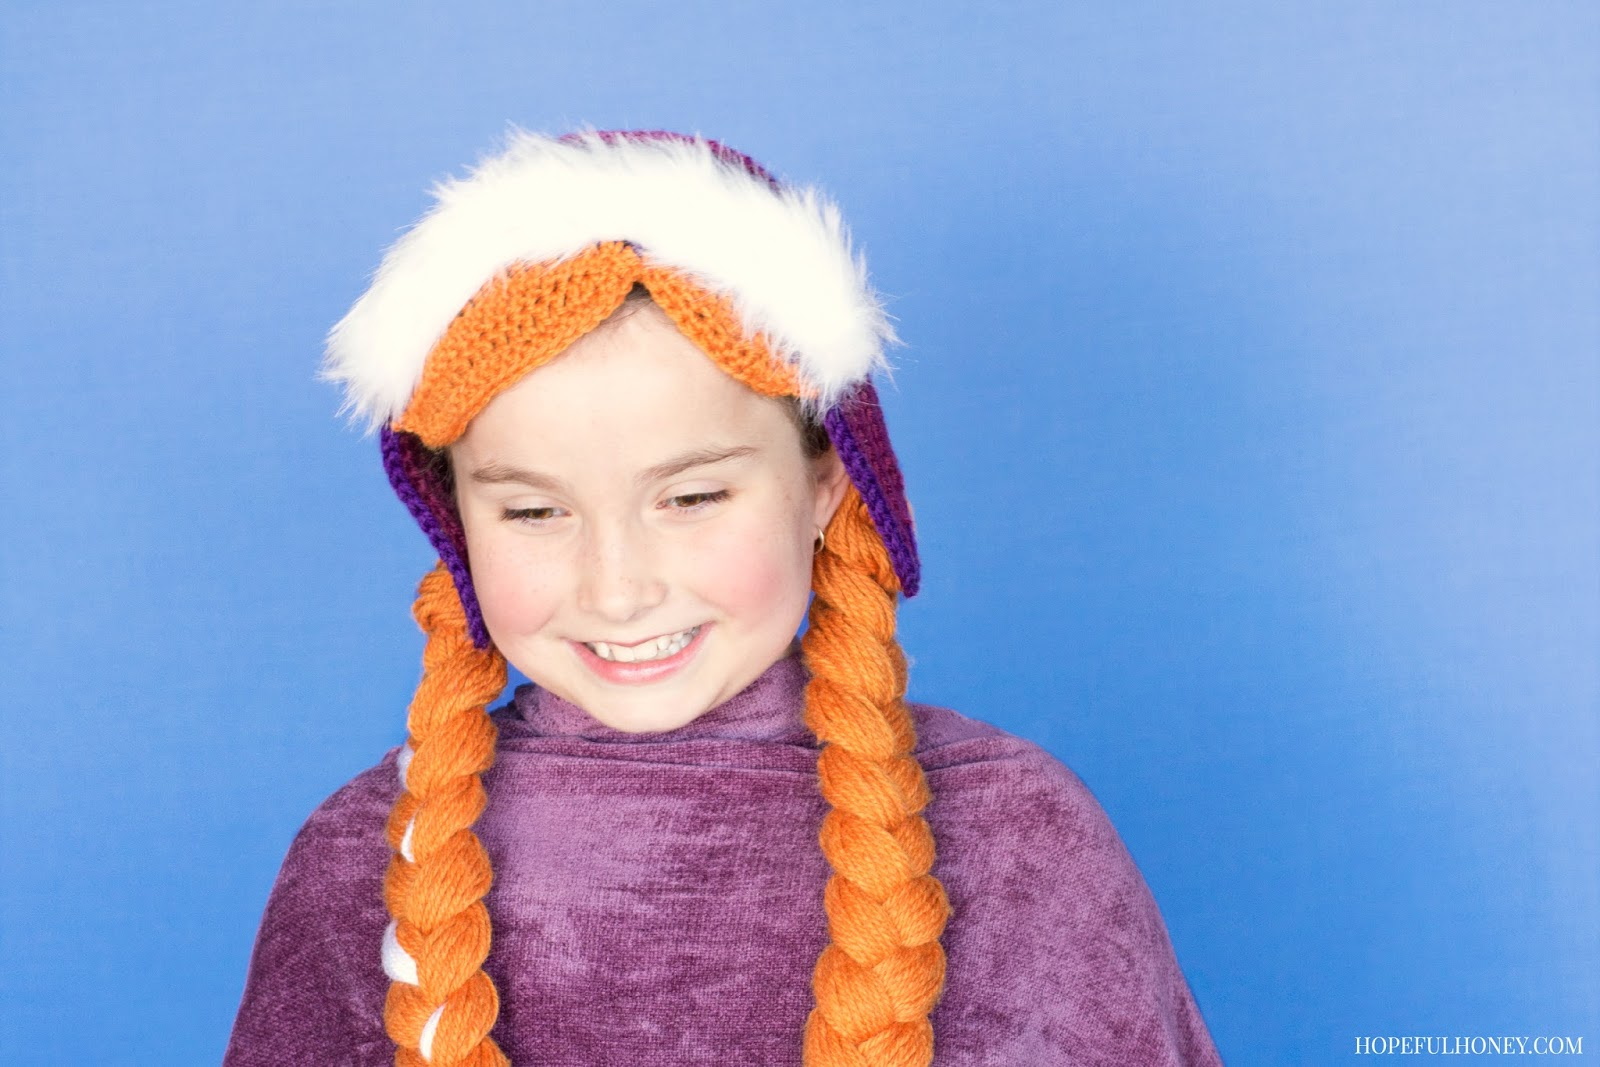 Crochet Pattern Anna Hat : Hopeful Honey Craft, Crochet, Create: Frozen Princess ...